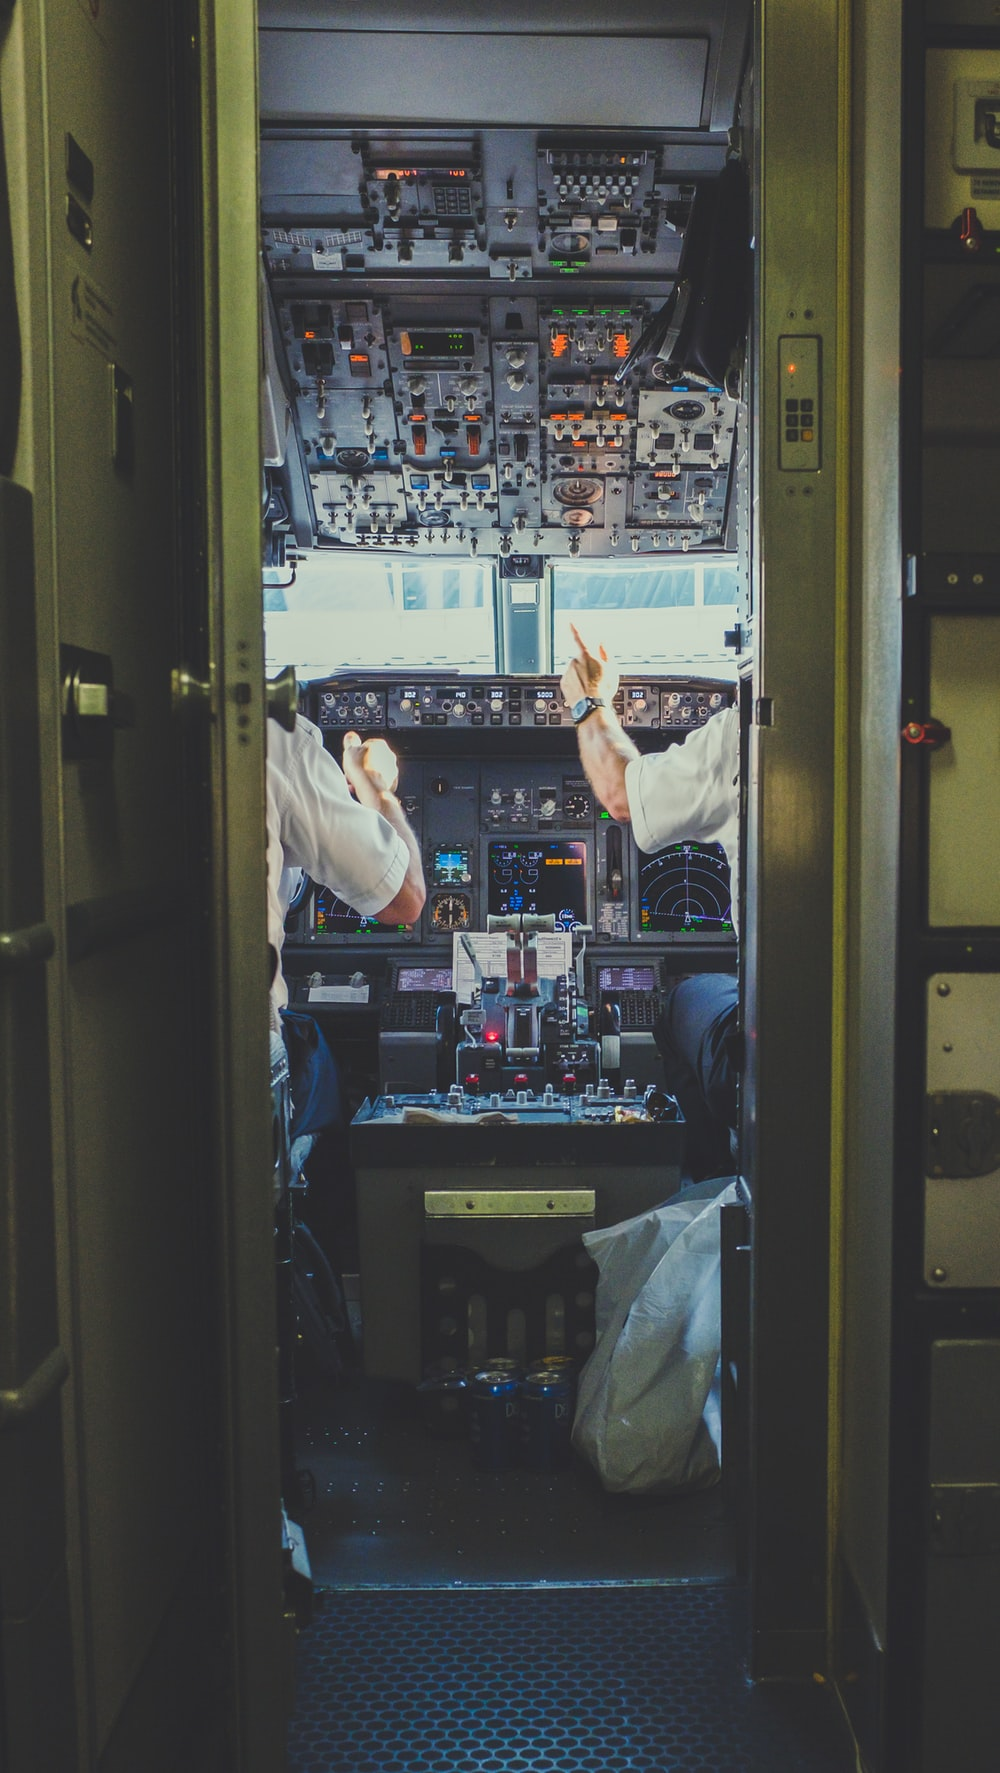 500 Pilot Pictures Hd Download Free Images On Unsplash